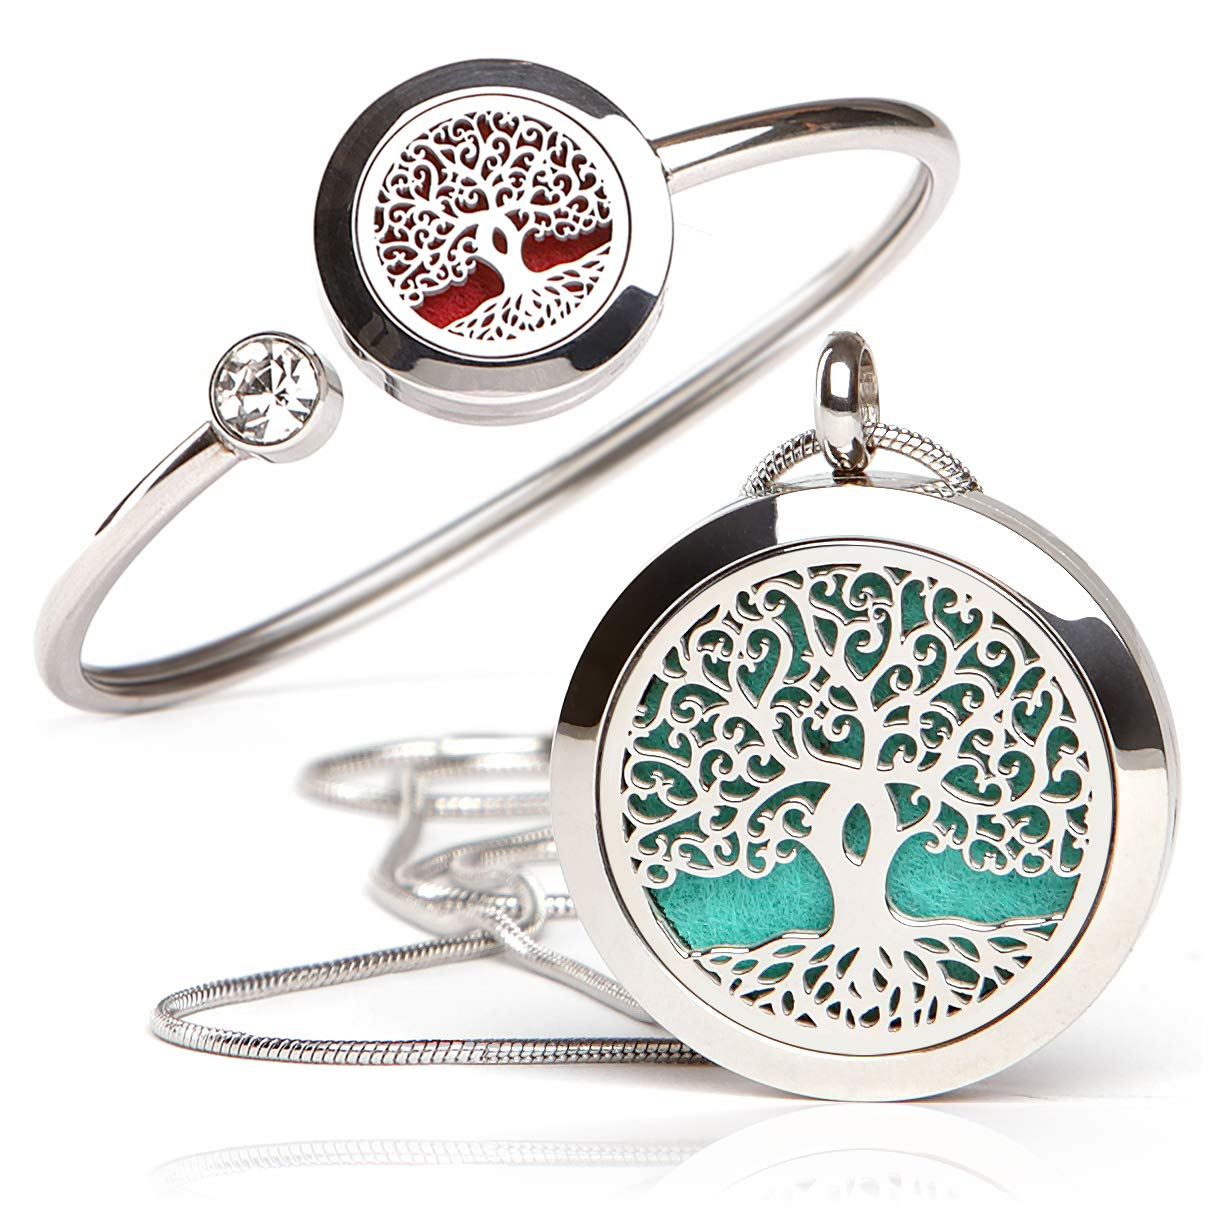 Essential Oil Diffuser Necklace and Bracelet Set - Best for Aromatherapy - Perfume, Fragrance, Scent Diffusers for Women - Tree of Life Gift Set (Small, Tree of Life - Necklace and Bracelet Set)